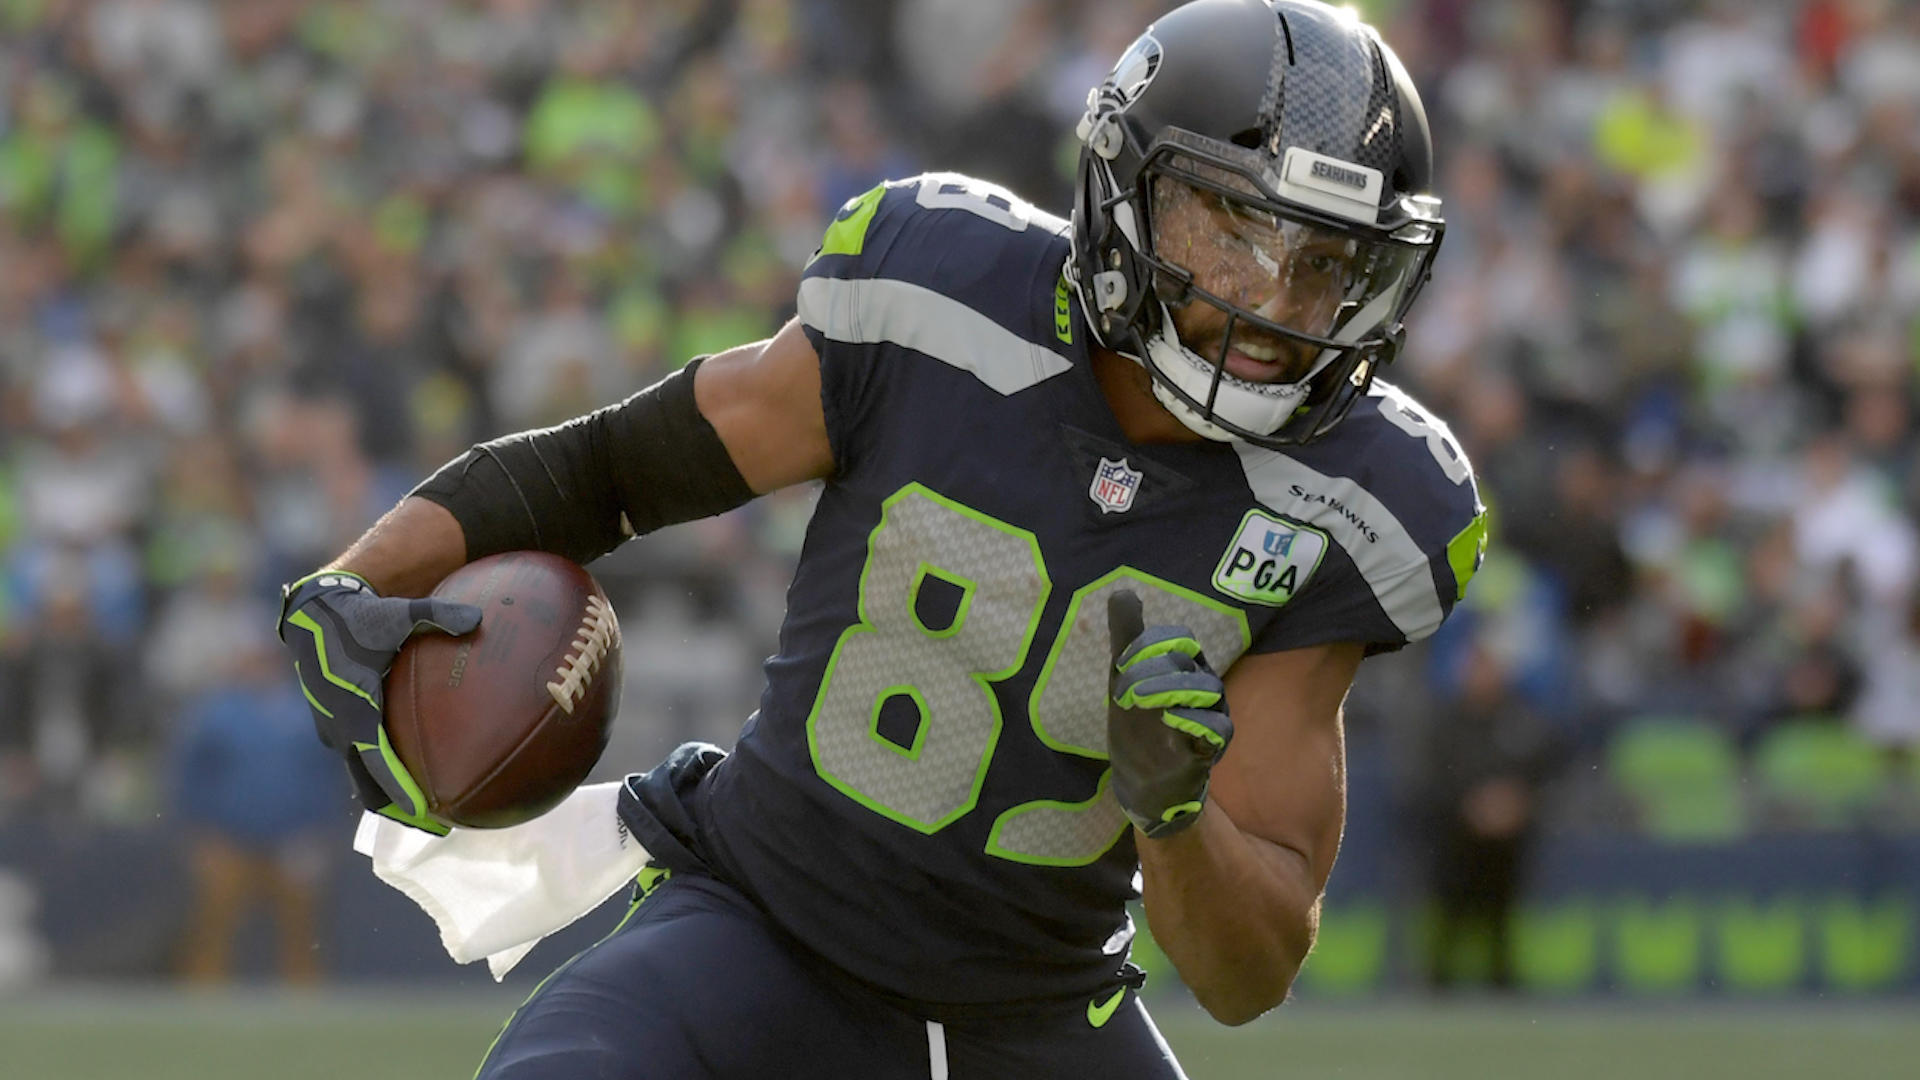 NFL 2019: Three ways the Seahawks can overcome the unexpected departure of Doug Baldwin